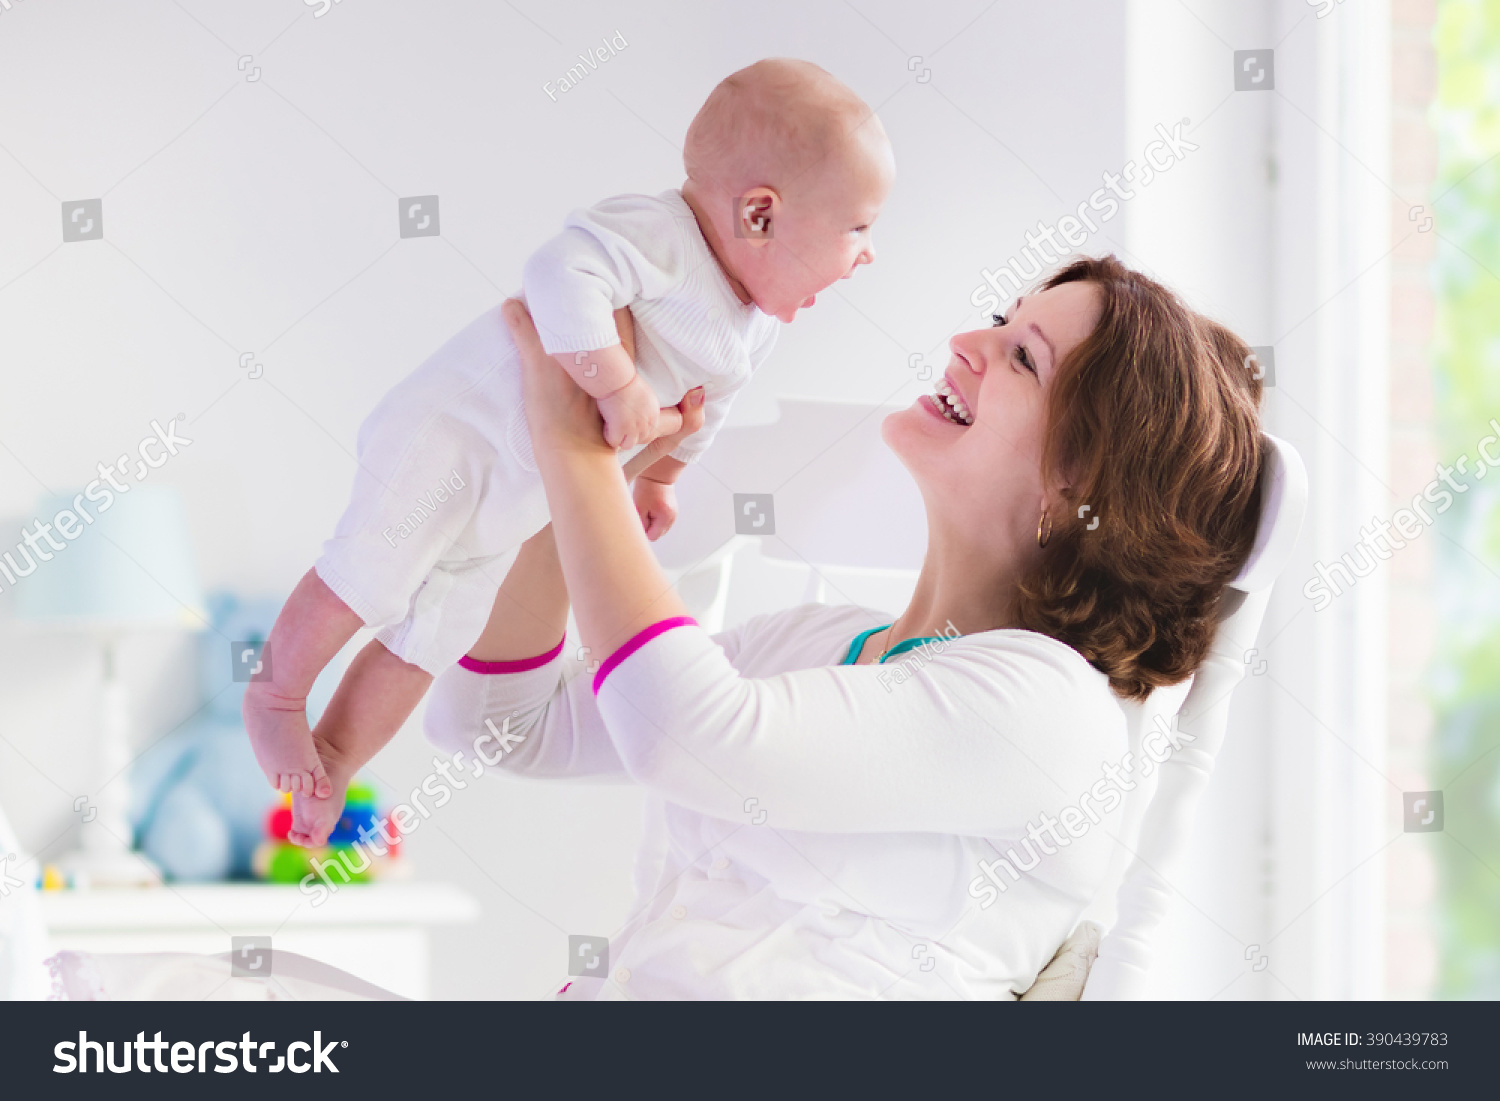 Blue Nursing Chair Young Mother Holding Her Newborn Child Stock Photo